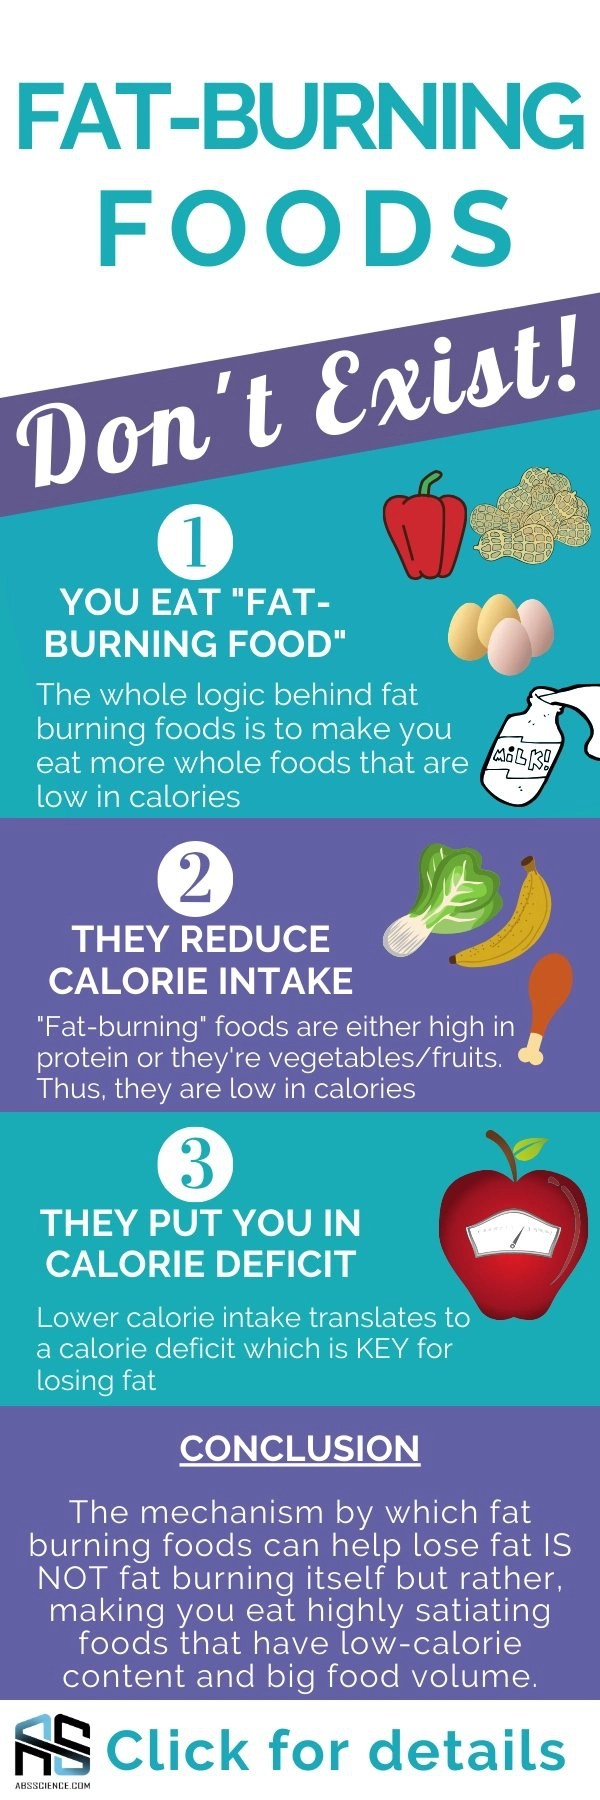 Are you putting your efforts on fat burning foods to lose weight? Bad news. Fat-burning foods are The Grade-A comedy. It's rubbish.  They do help to burn fat indirectly by decreasing calorie intake but they do shit to burn fat directly. This article will teach you 4 weight loss staples that are better than fat burning foods.